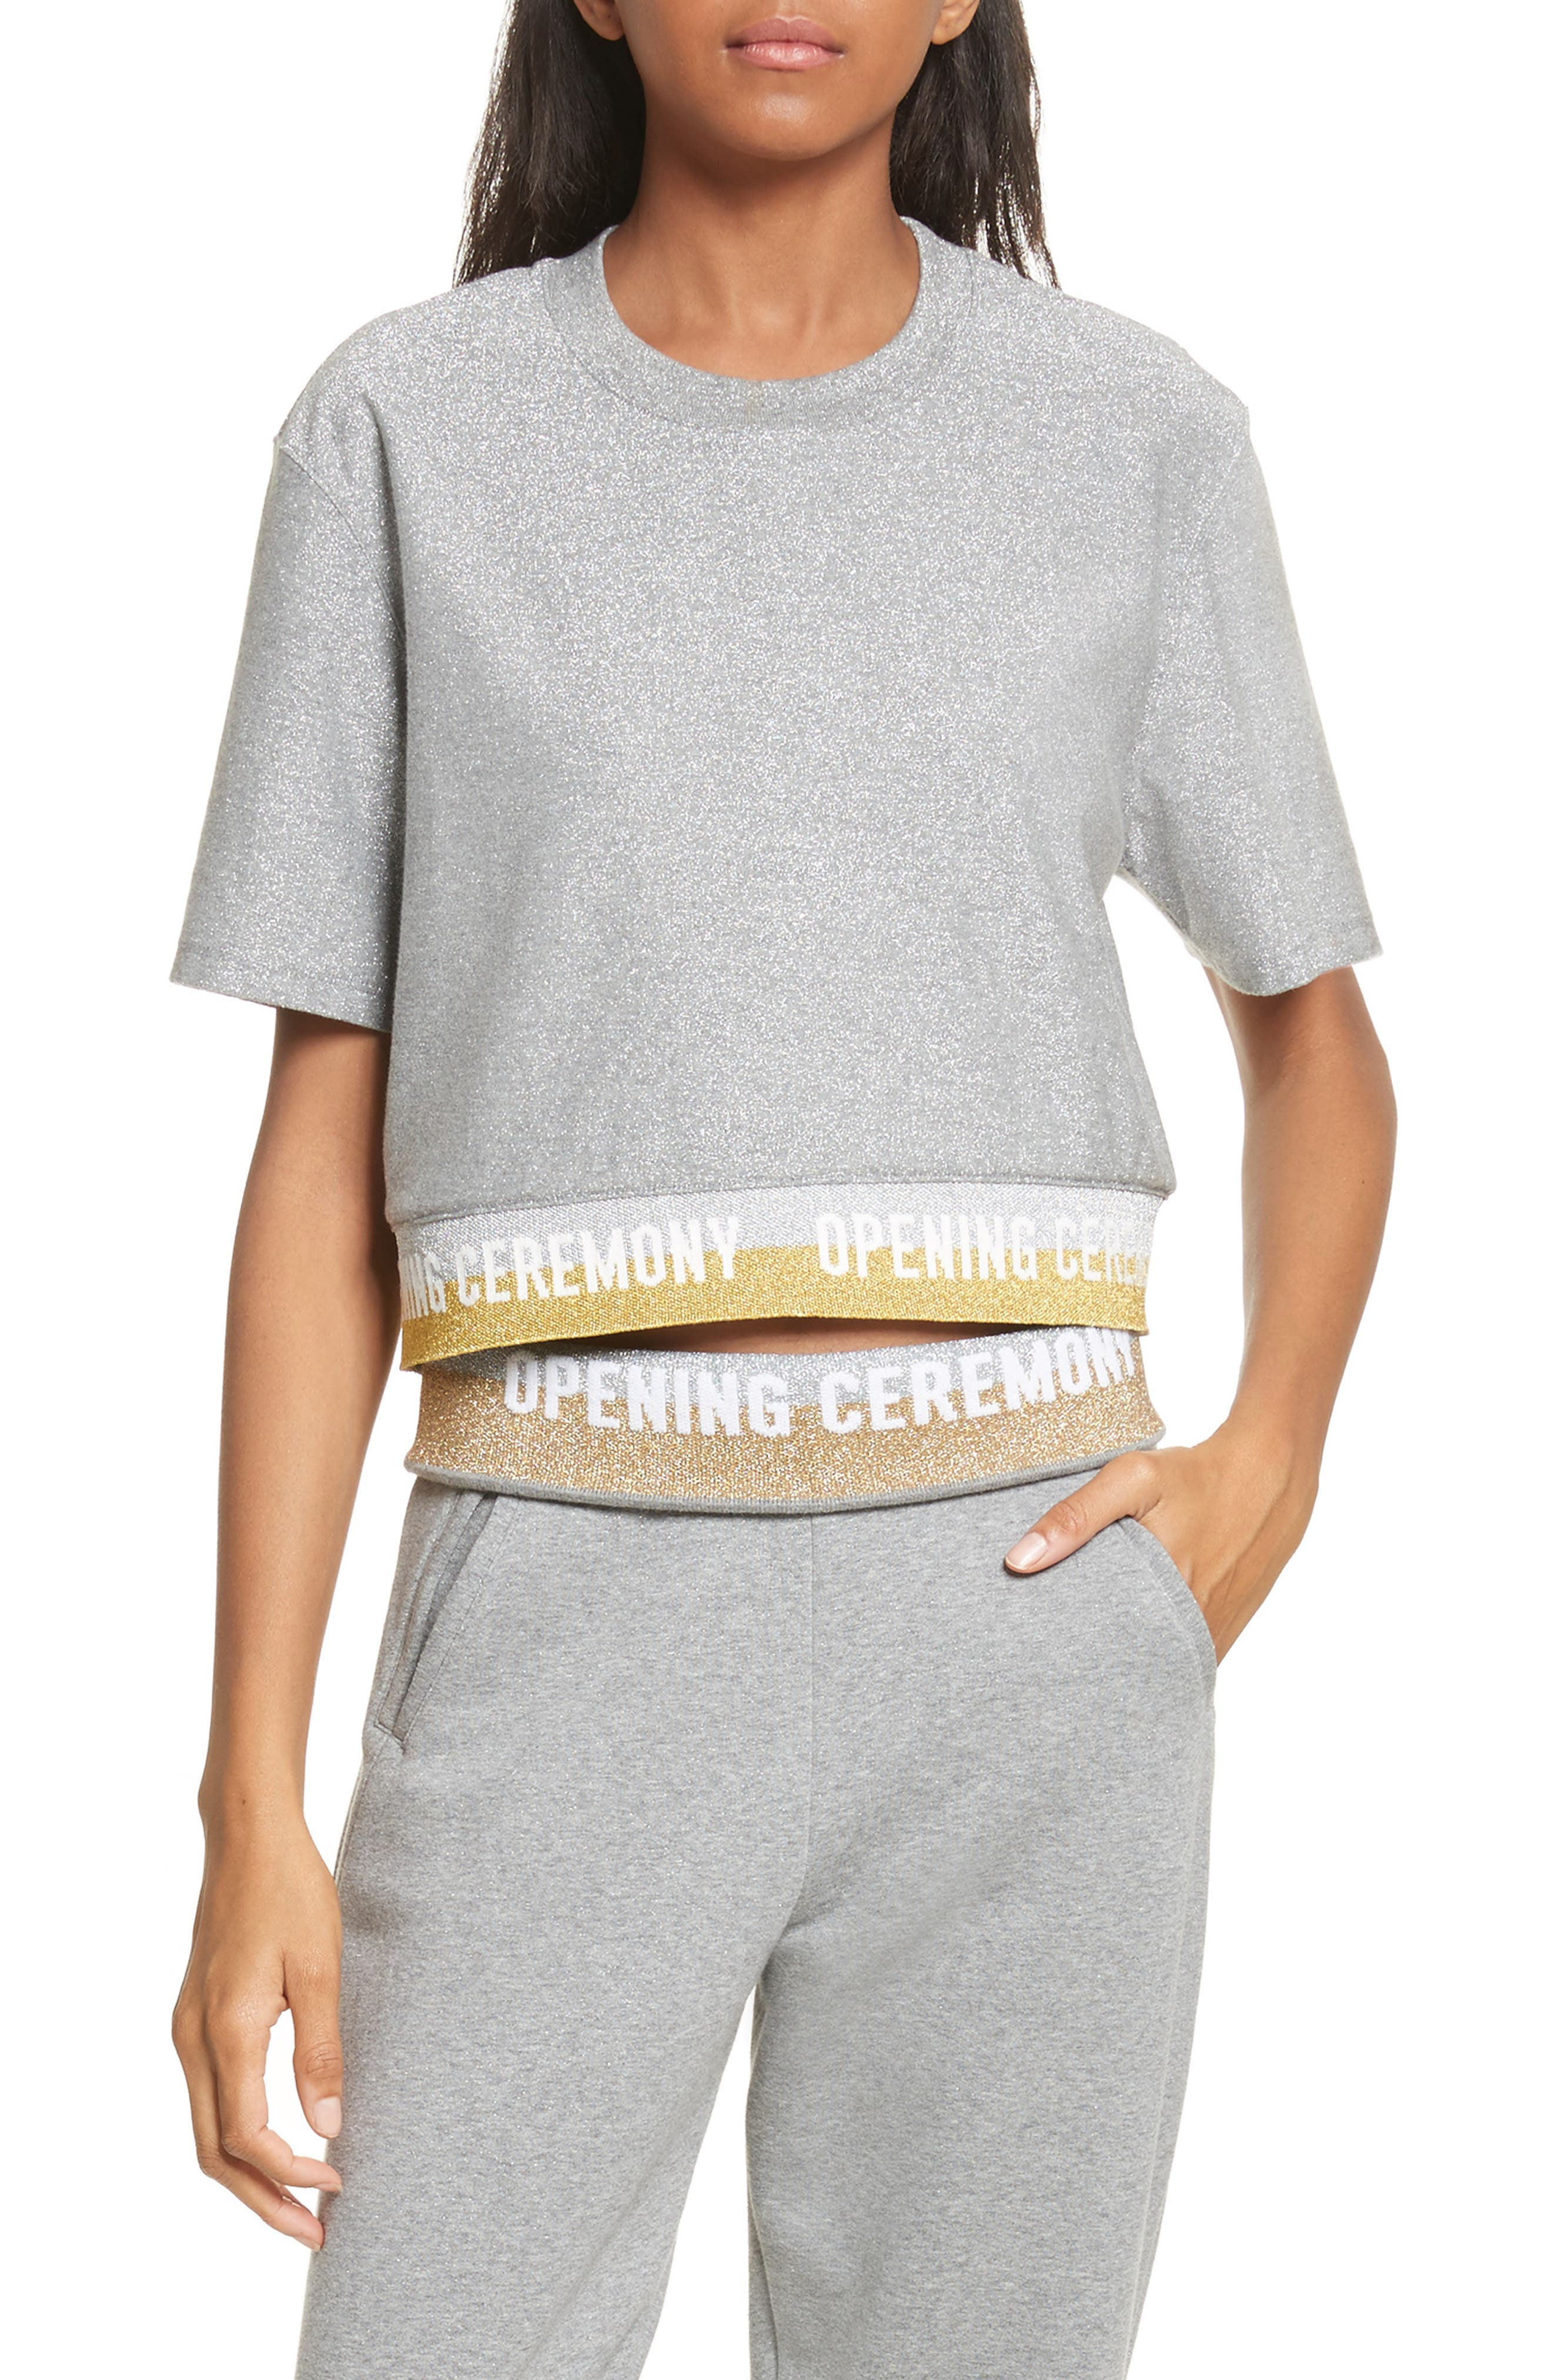 Opening Ceremony Elastic Logo Crop Tee (Limited Edition)